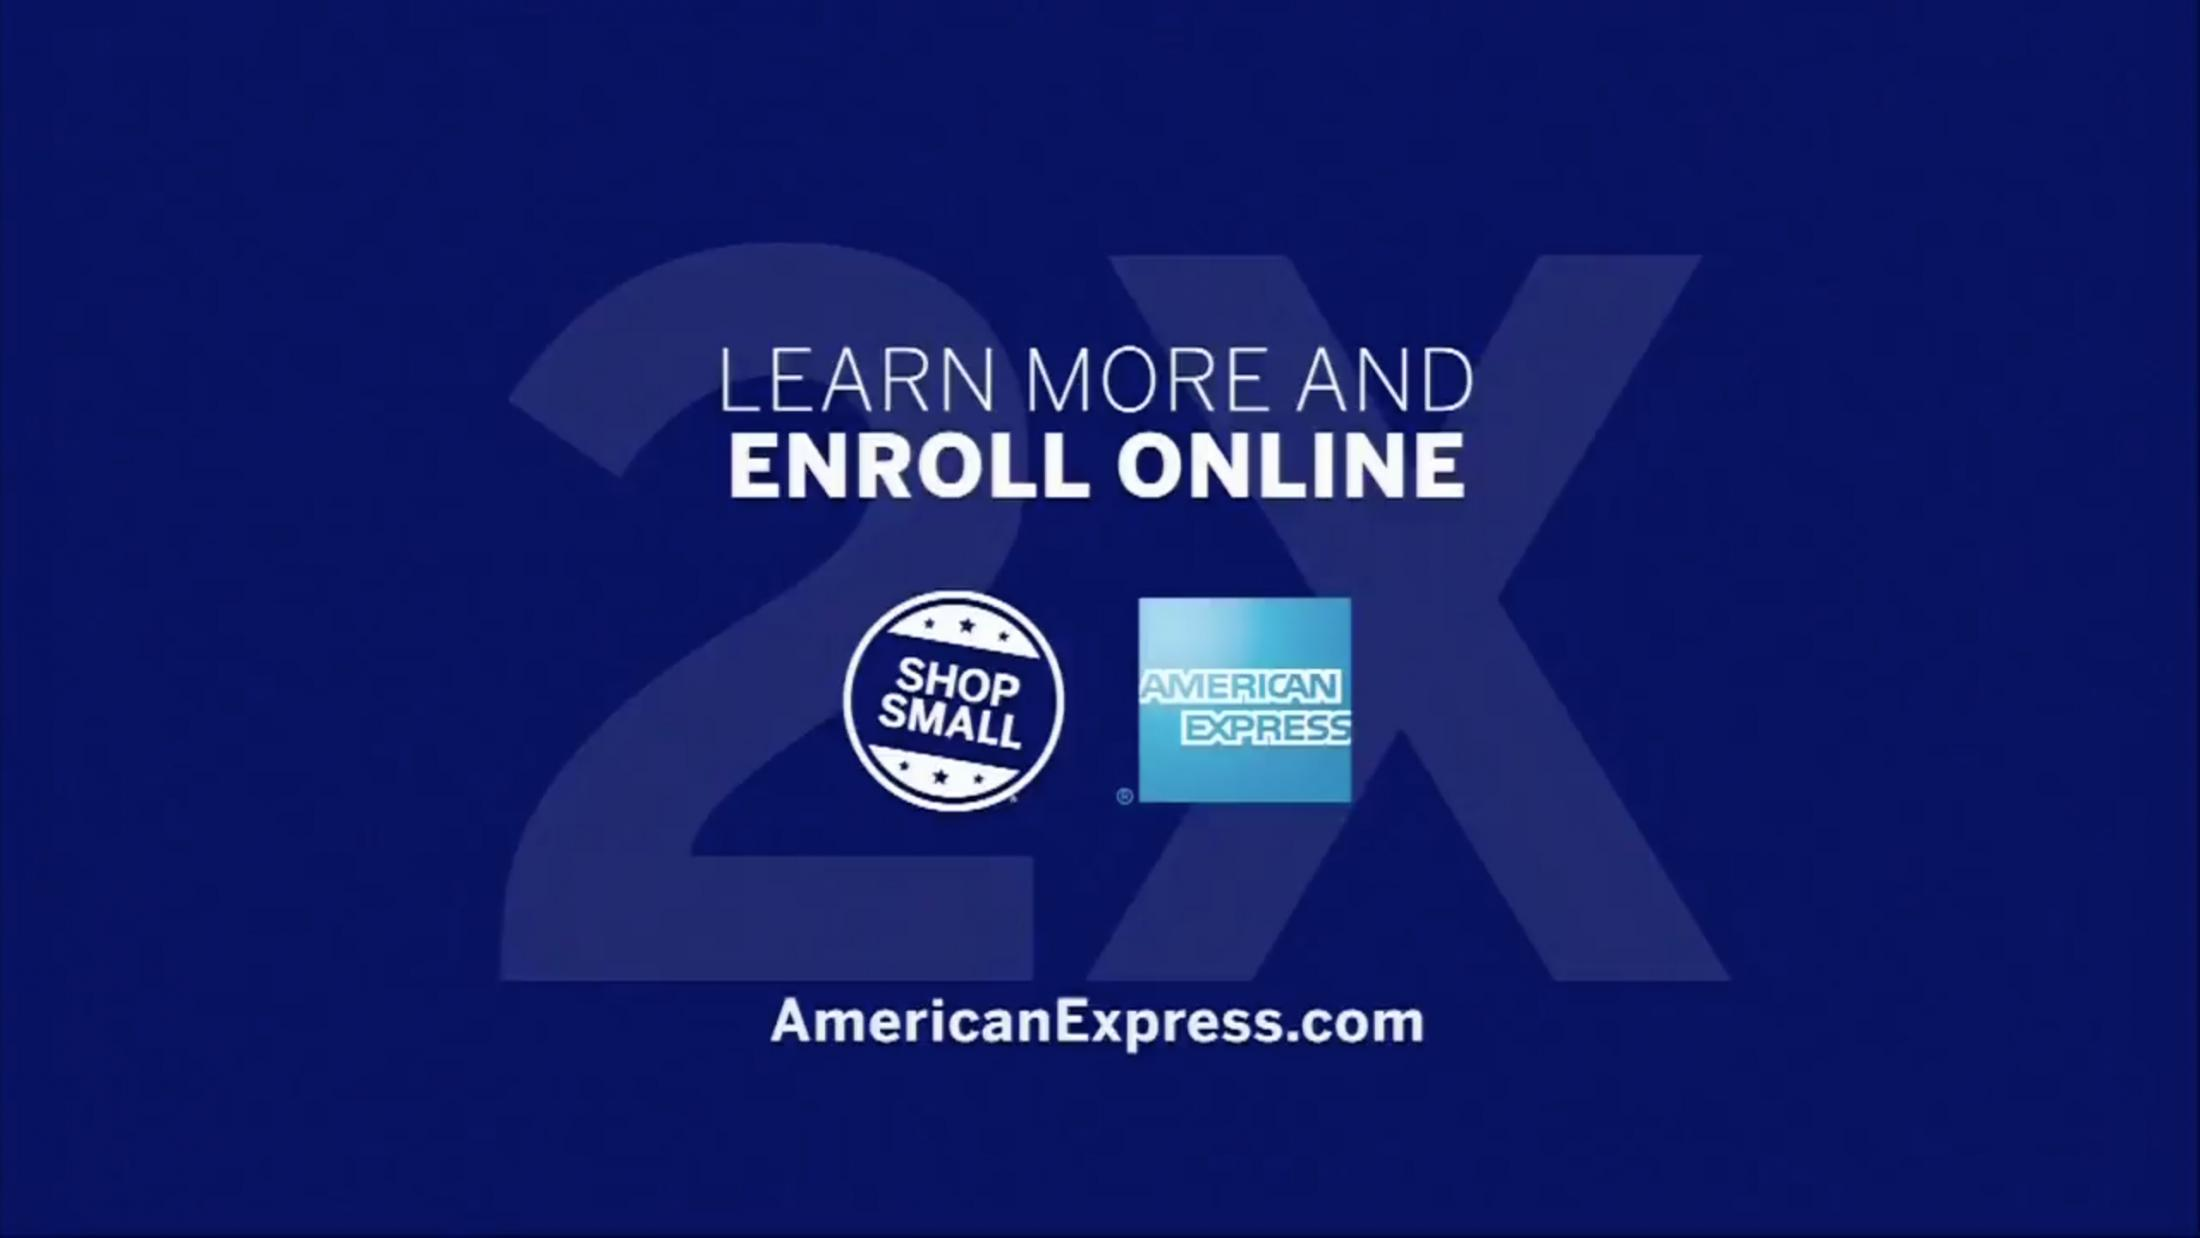 Thumbnail for American Express Shop Small for 2X Rewards